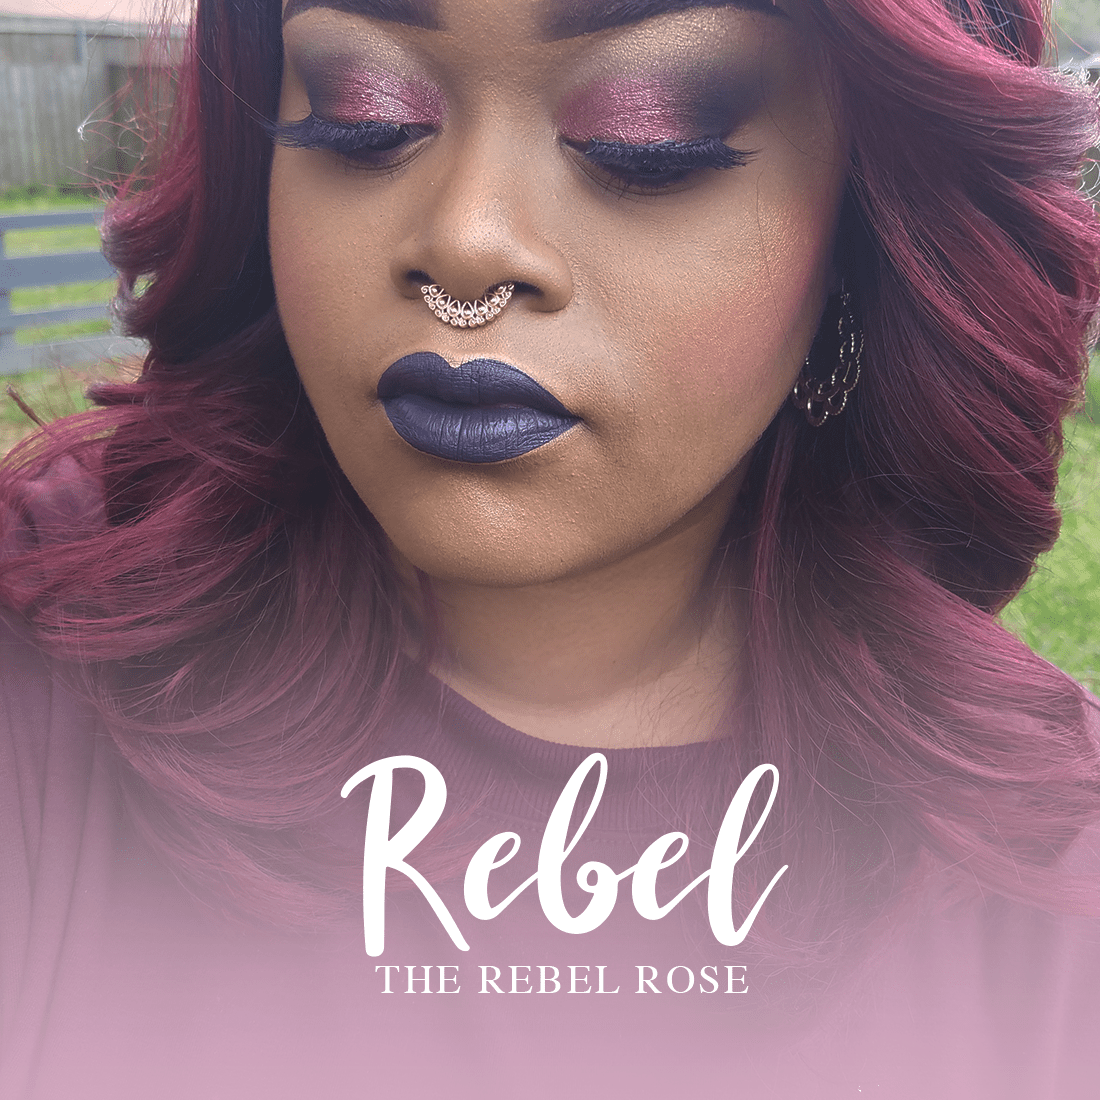 The Rebel Rose